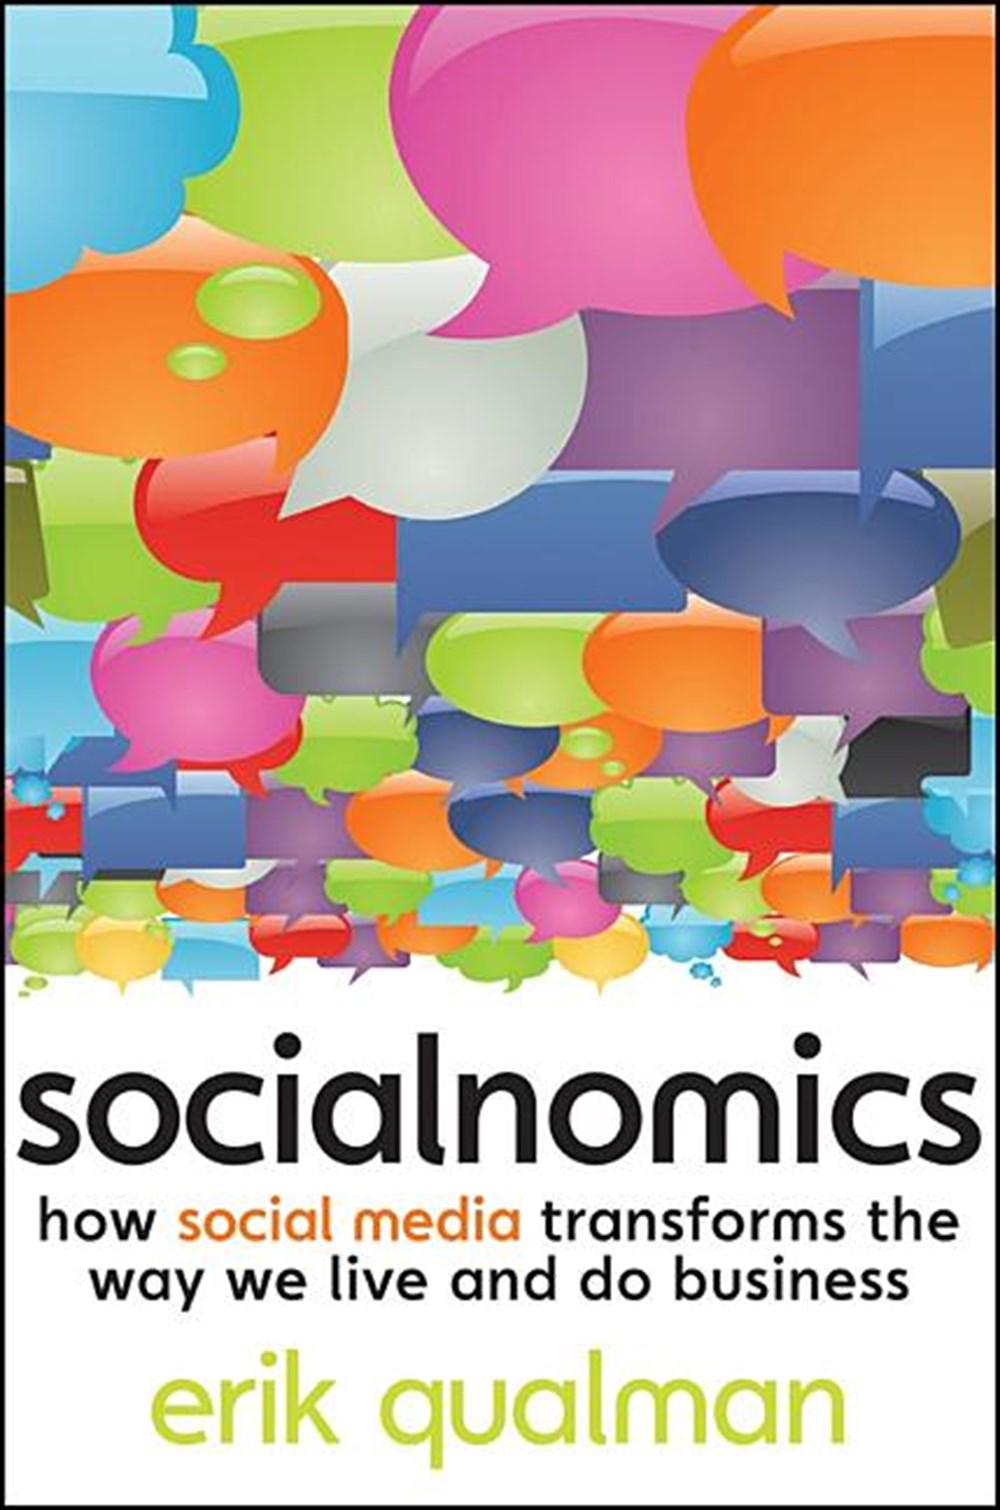 Socialnomics How Social Media Transforms the Way We Live and Do Business